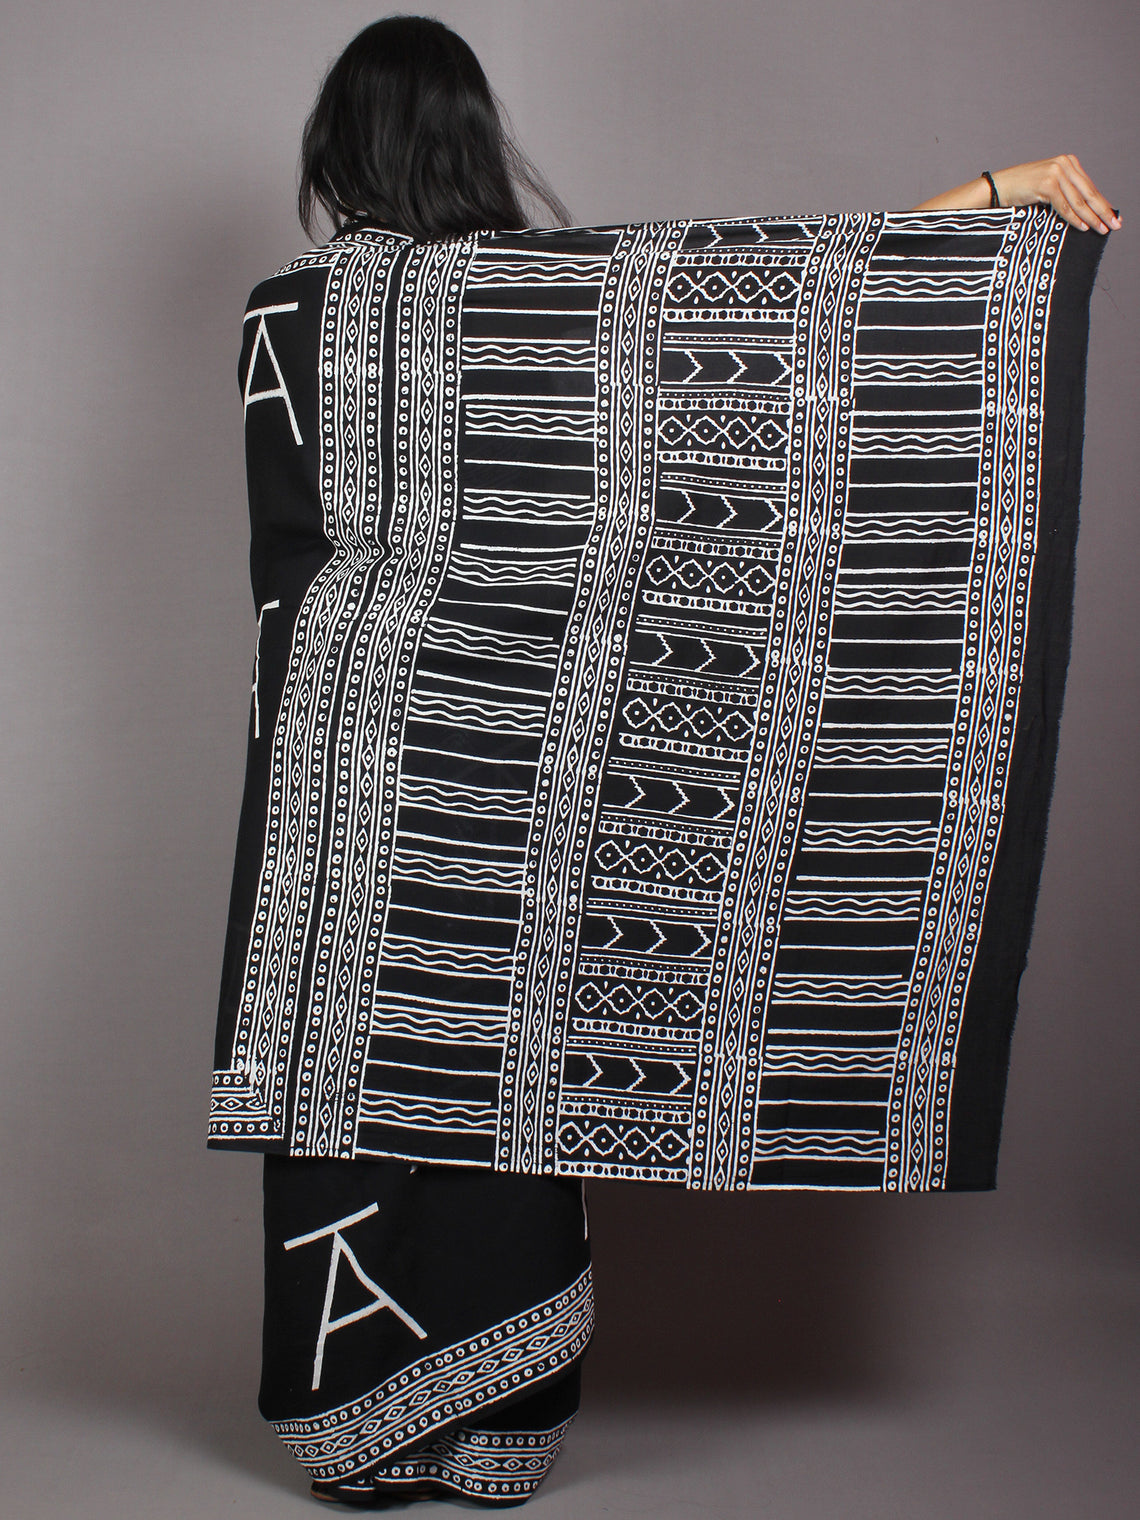 Black White Cotton Hand Block Printed Saree in Natural Colors - S03170526